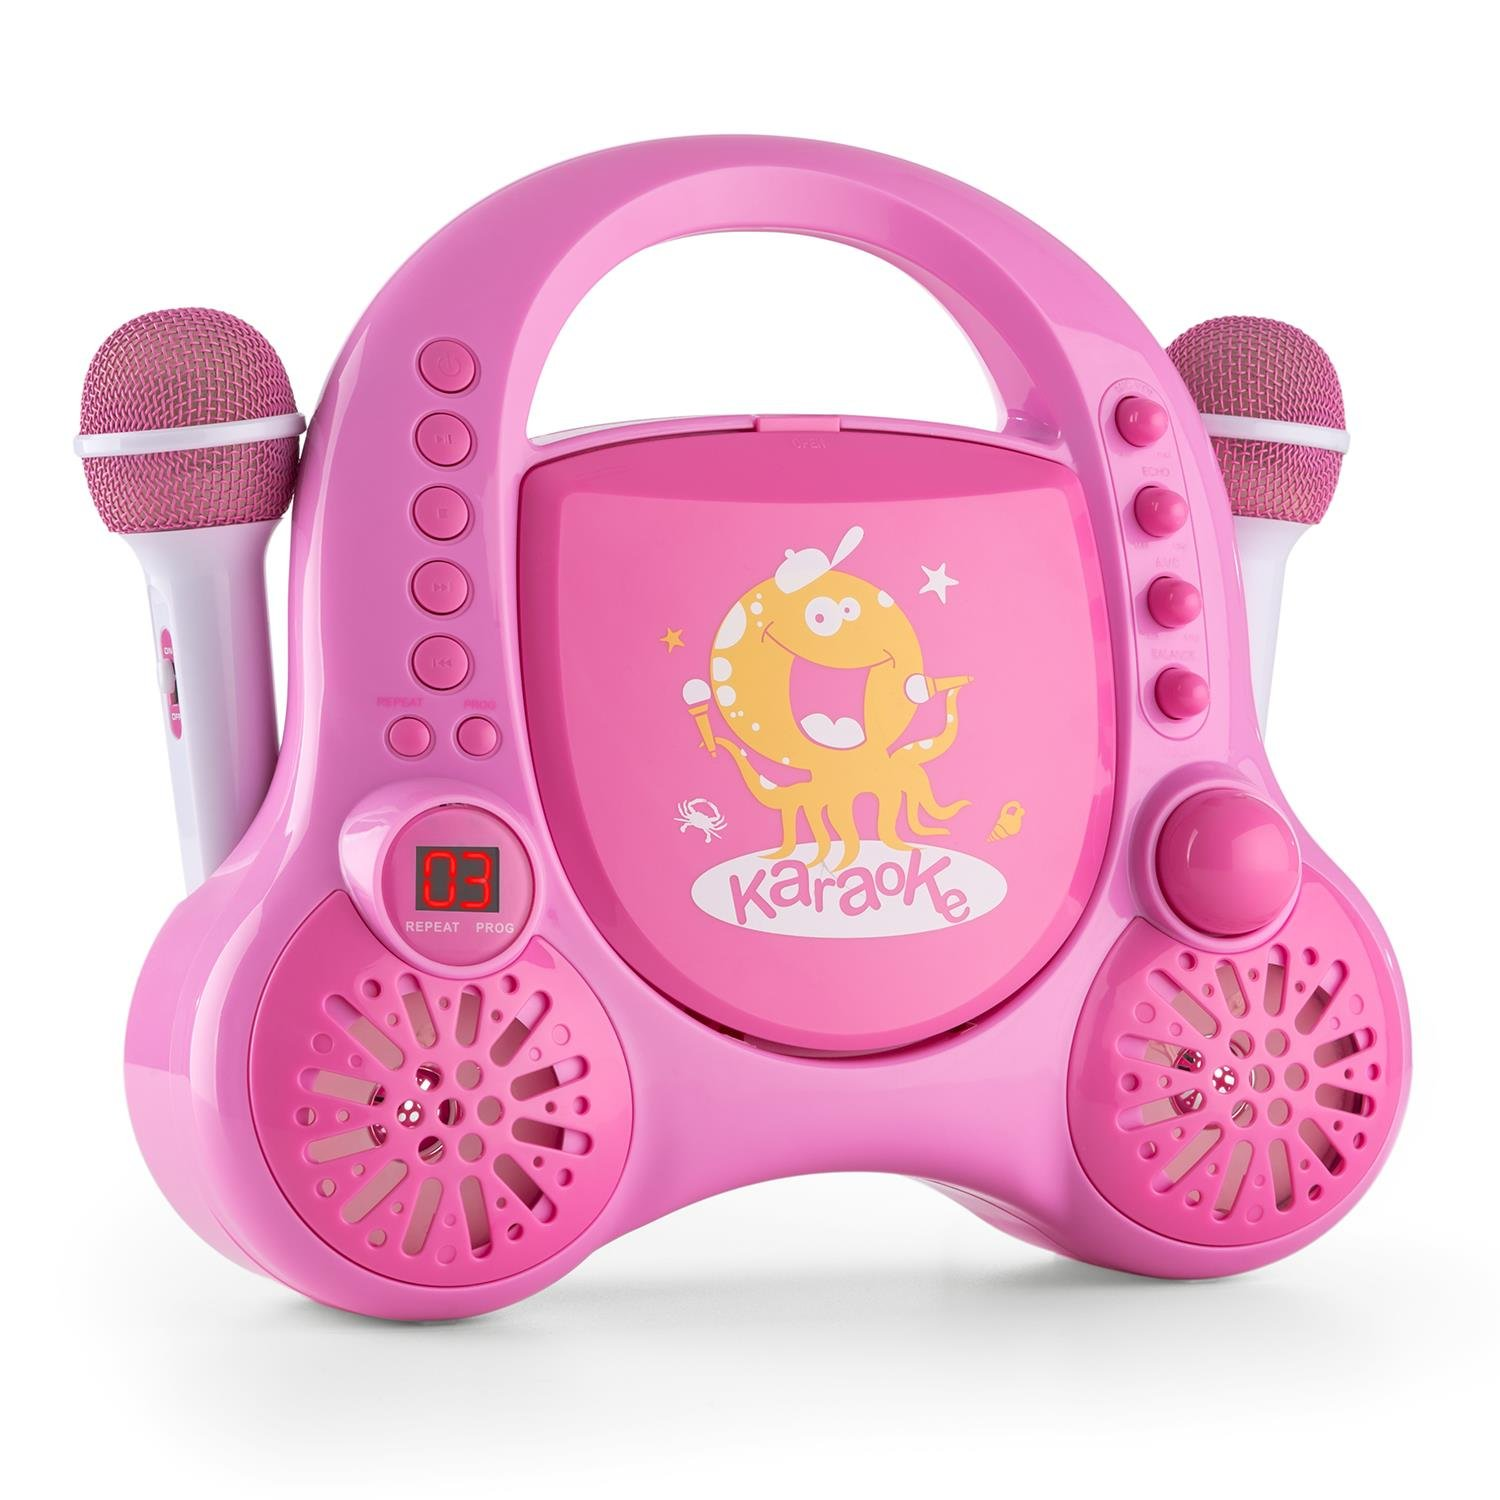 Pink a auna RockpocketA Kids Karaoke Player System • CDPlayer • AUX • 2 x Microphones • Stereo Speakers • Carrying Handle On the Top • Rounded Body Design with No Sharp Corners • BuiltIn Battery • Pink